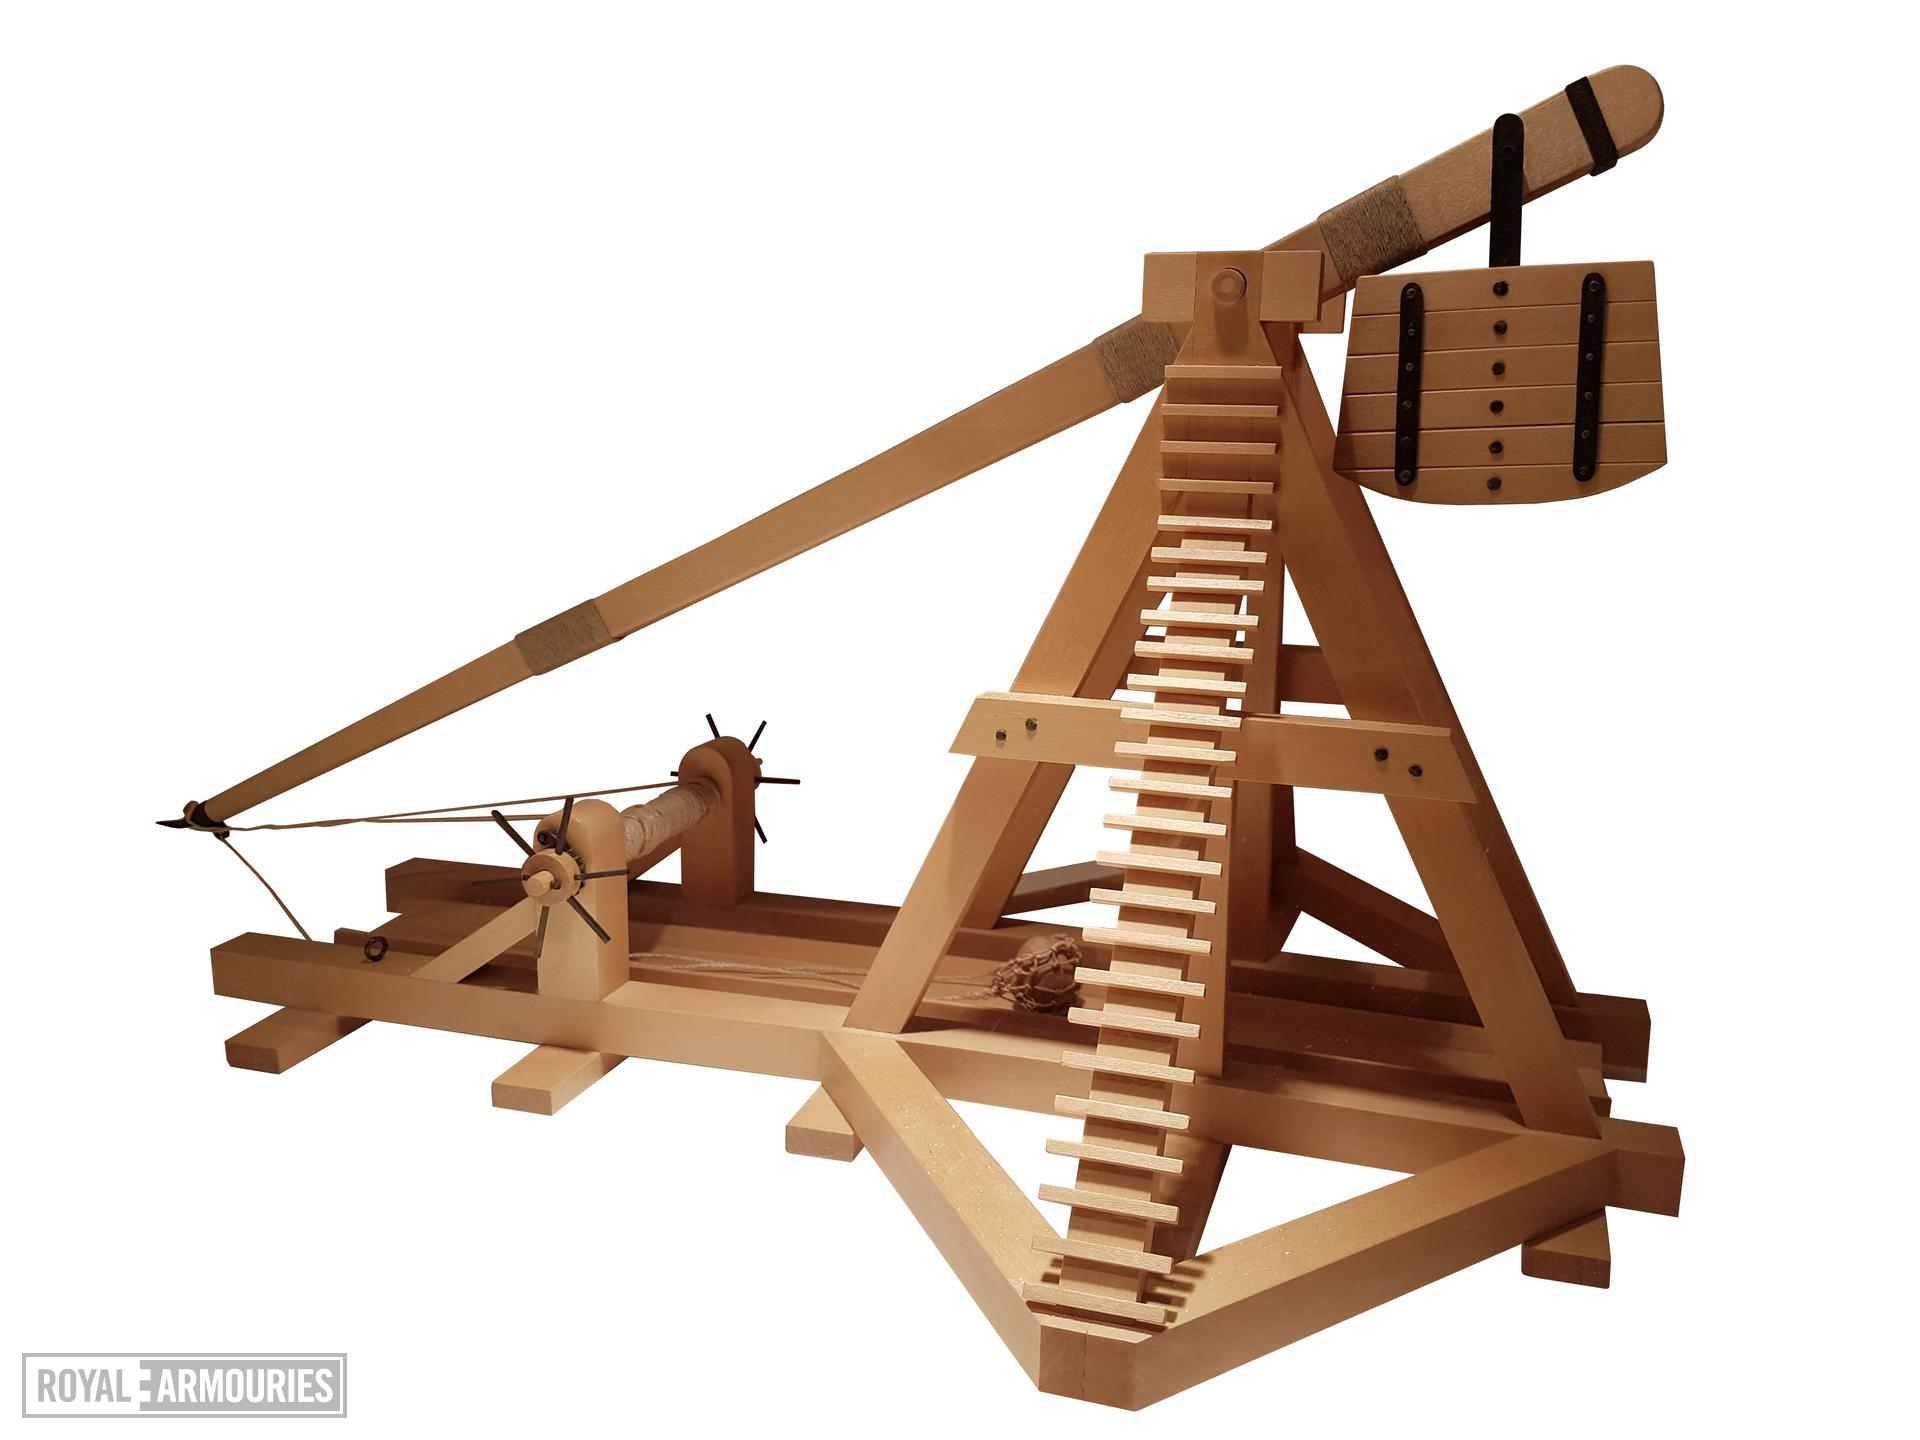 Wooden model of a 13th-century counterpoise trebuchet.The counterweight on the shorter end of the balance arm would be a box of stones. The longer end has a sling in which is secured a stone. British, 1994 (M.90)